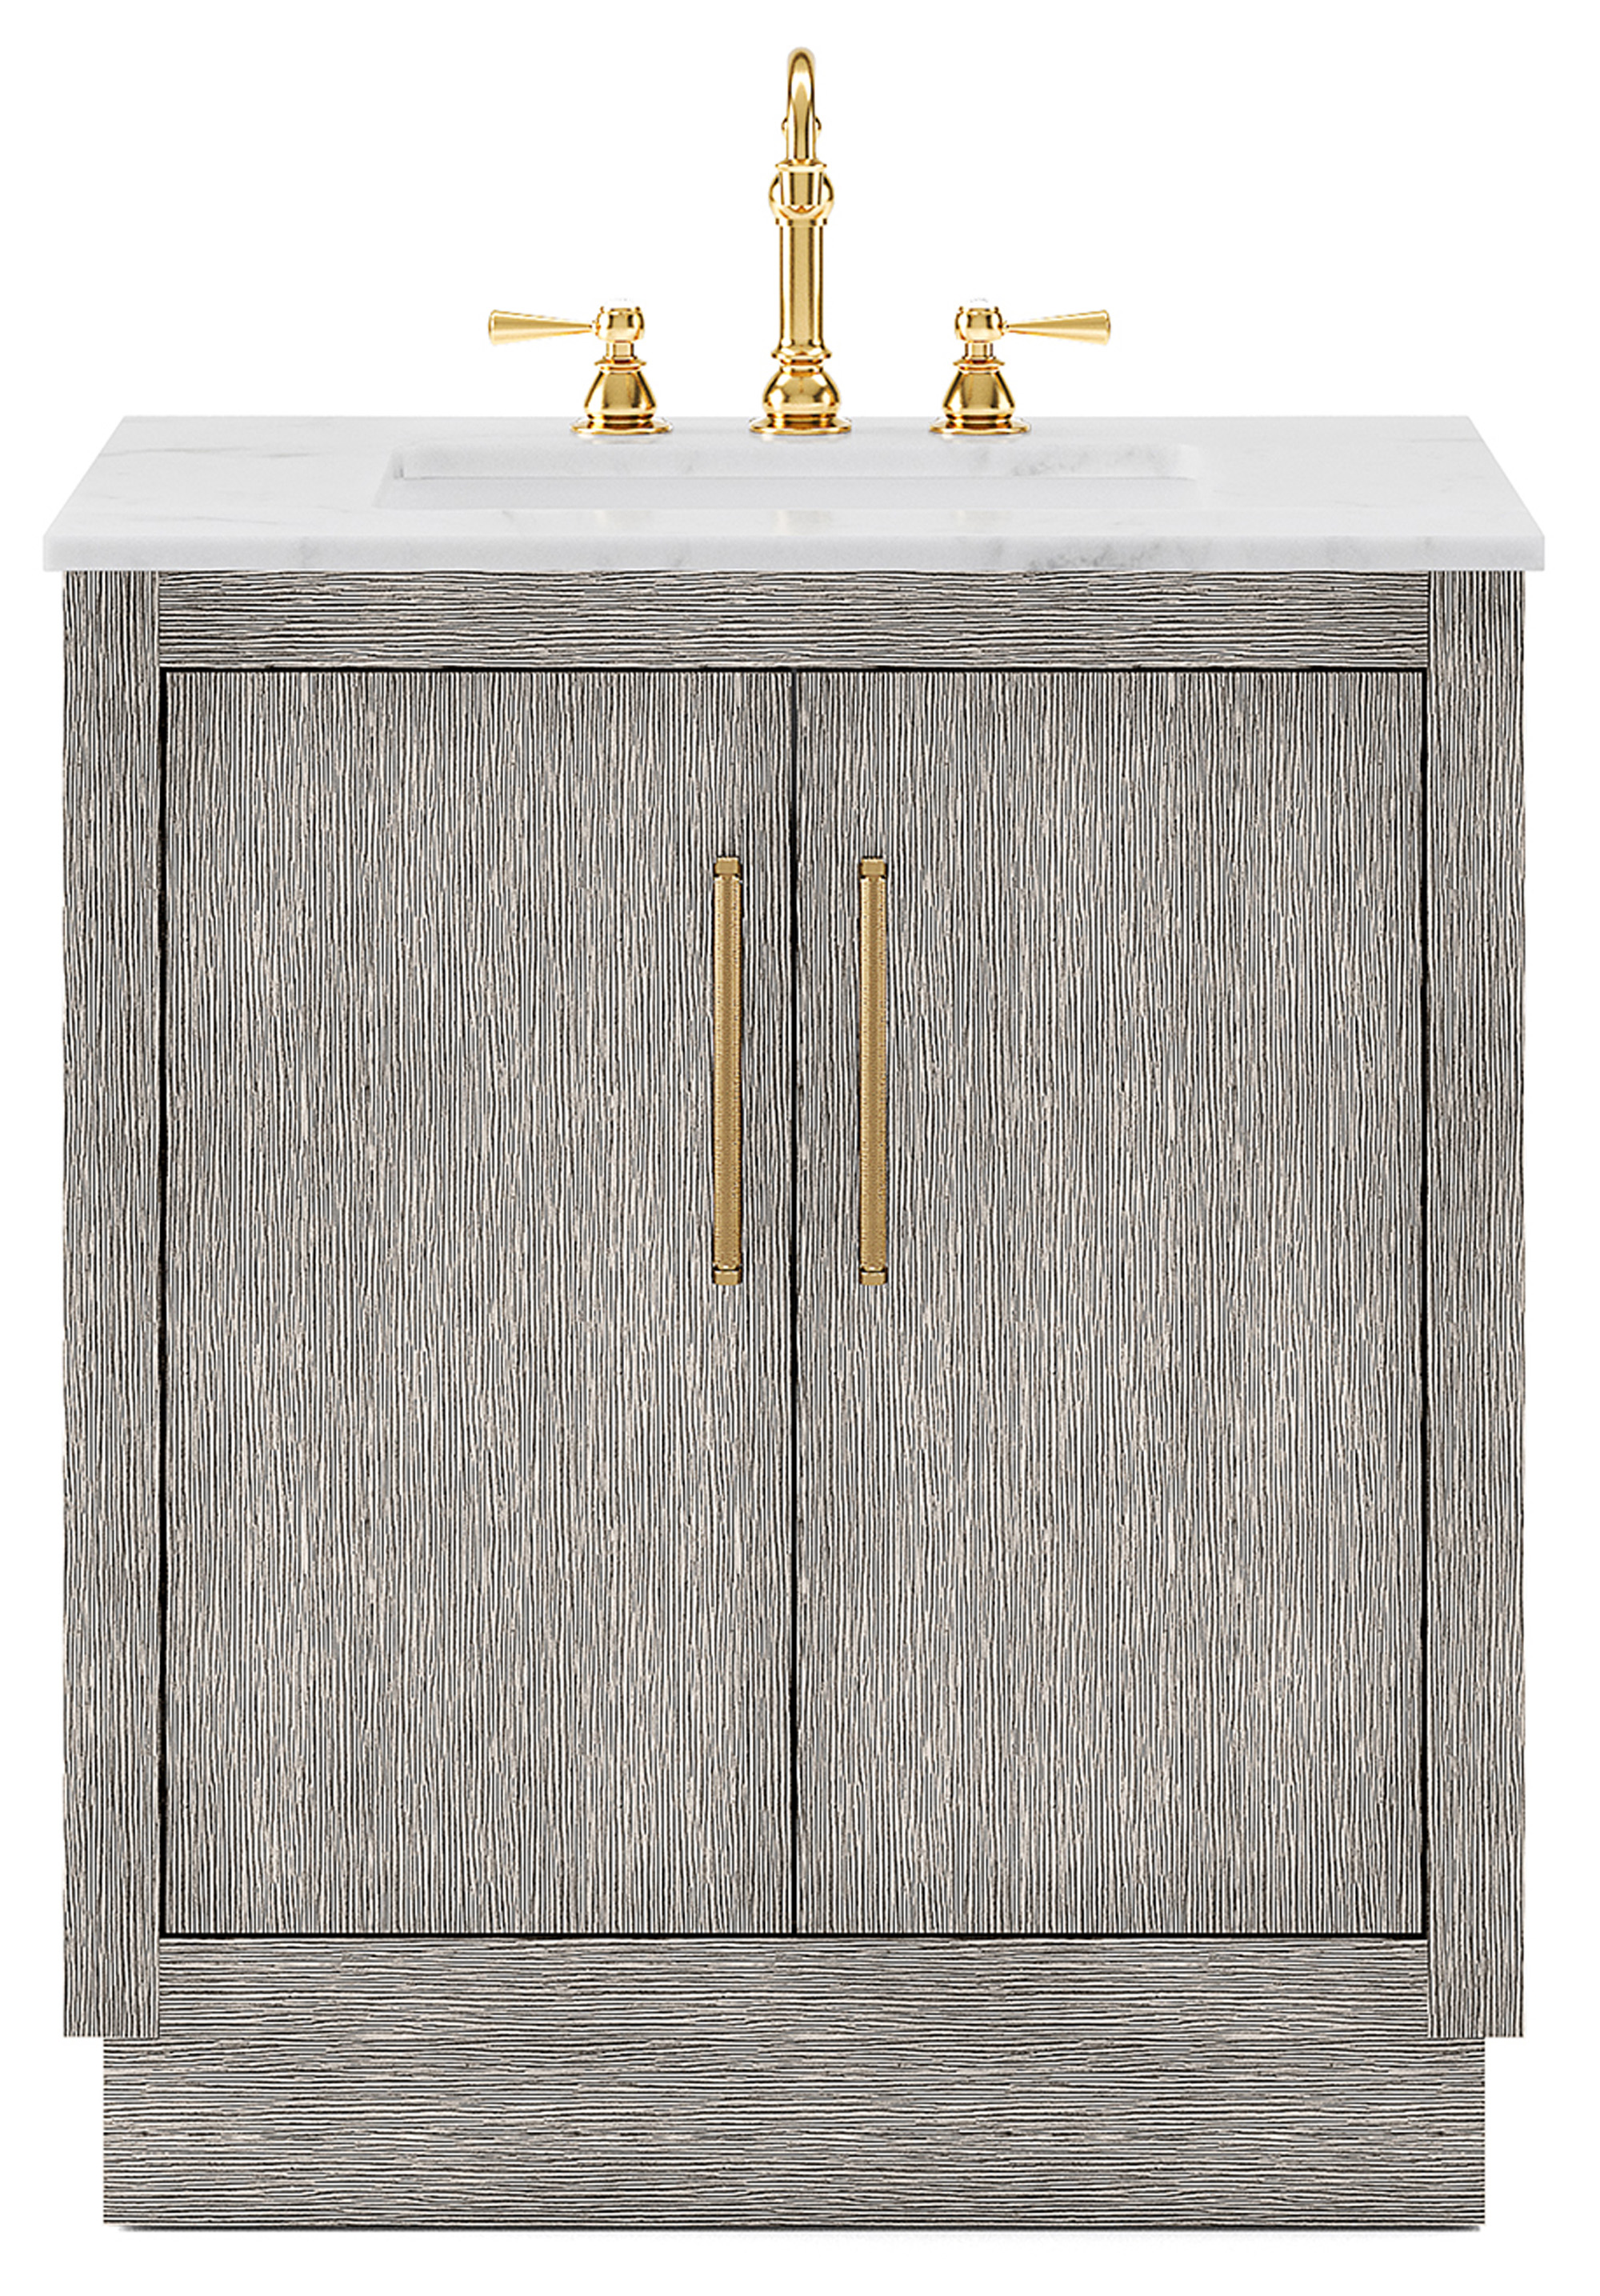 "30"" Single Sink Carrara White Marble Countertop Vanity in Grey Oak with Faucet and Mirror Options"